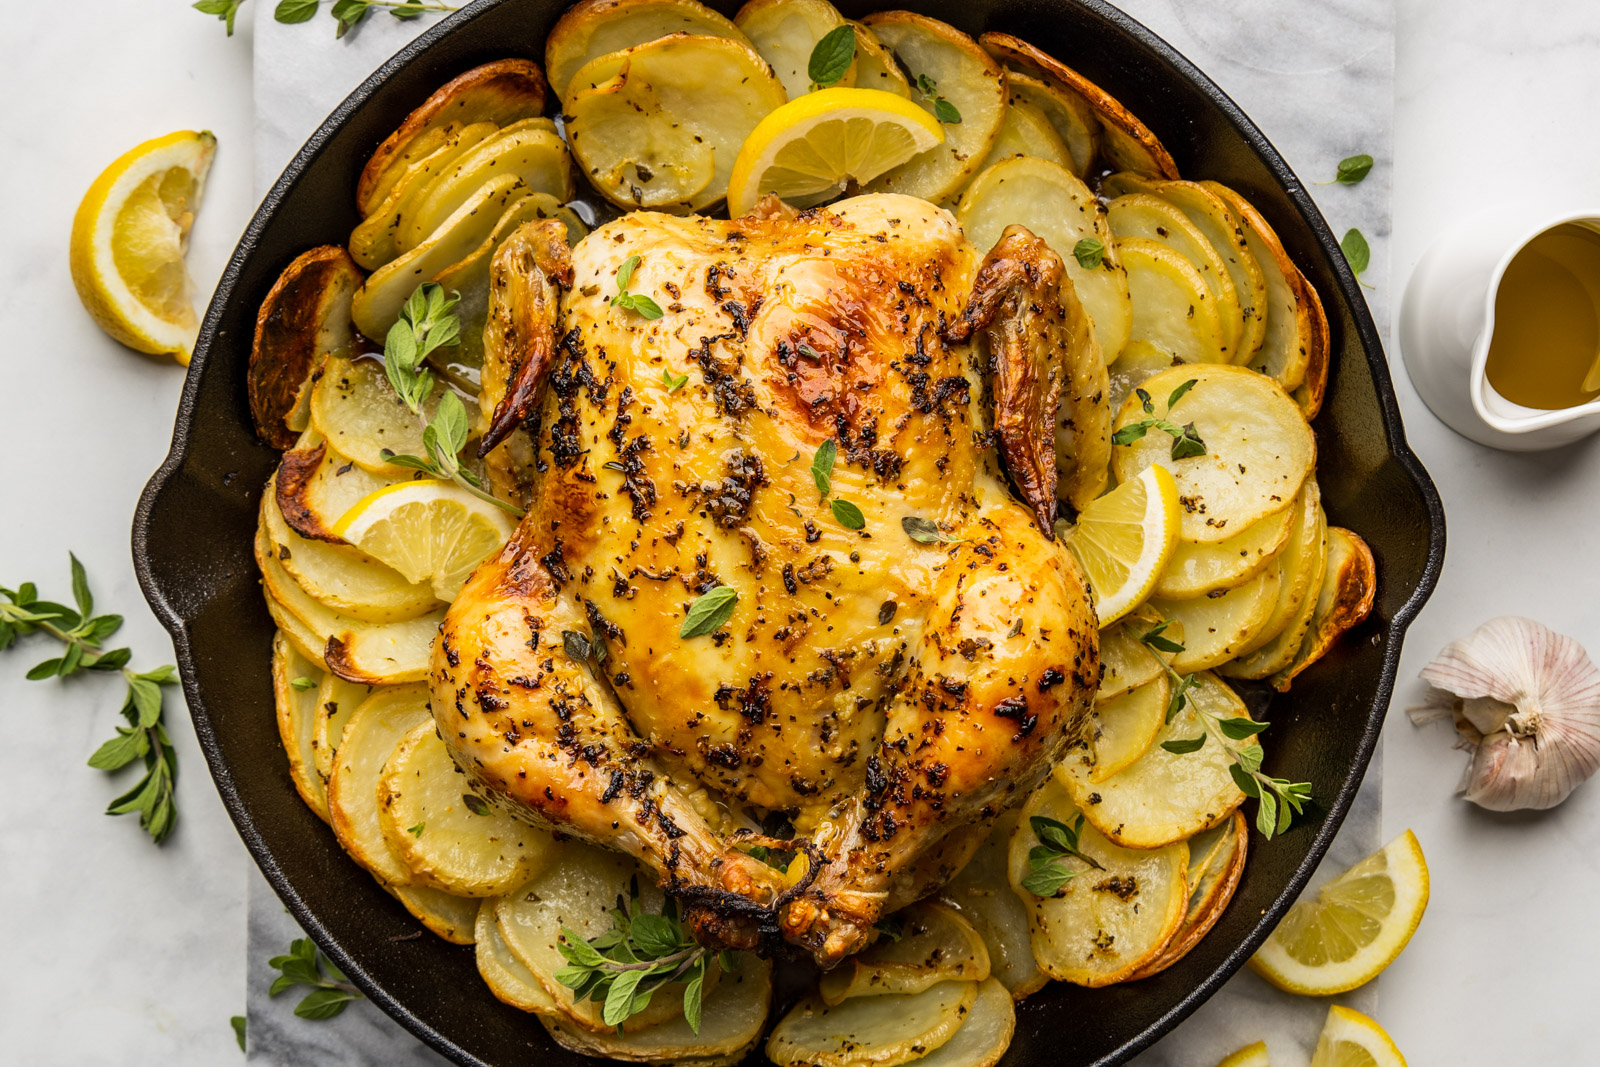 Greek Style Skillet Roast Chicken With Crispy Potatoes